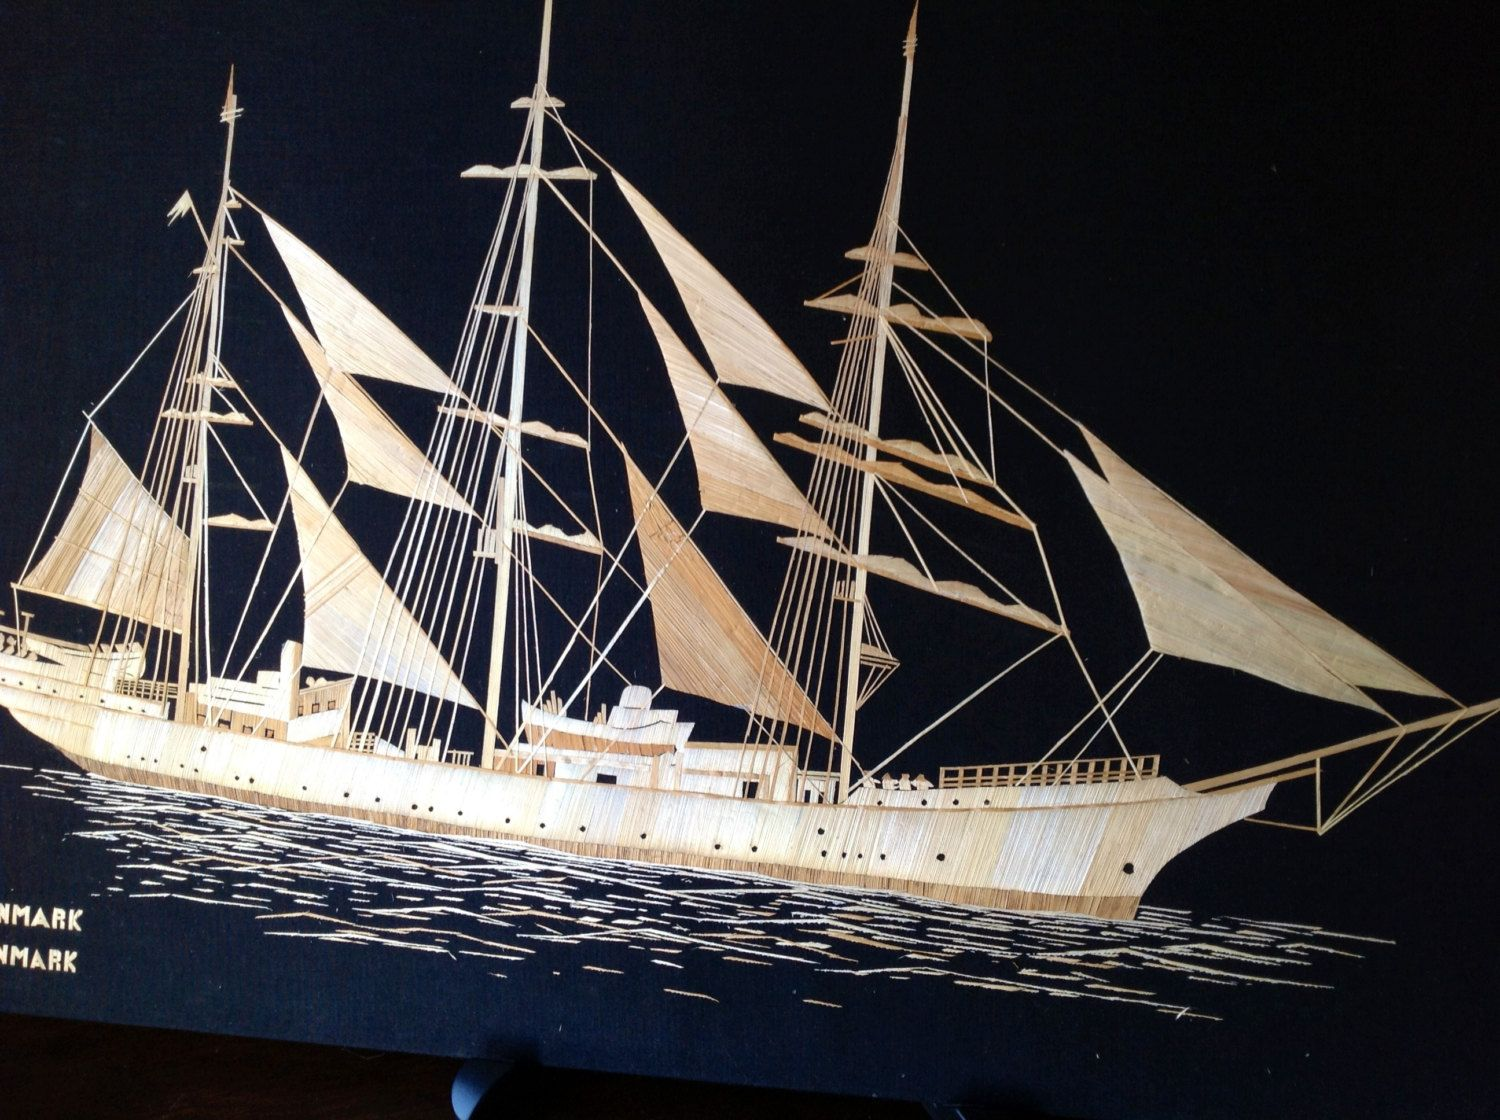 DANMARK  TALLSHIP of Denmark handmade with dried leaves of rice plant. Sailing ship of Denmark by museumshop on Etsy